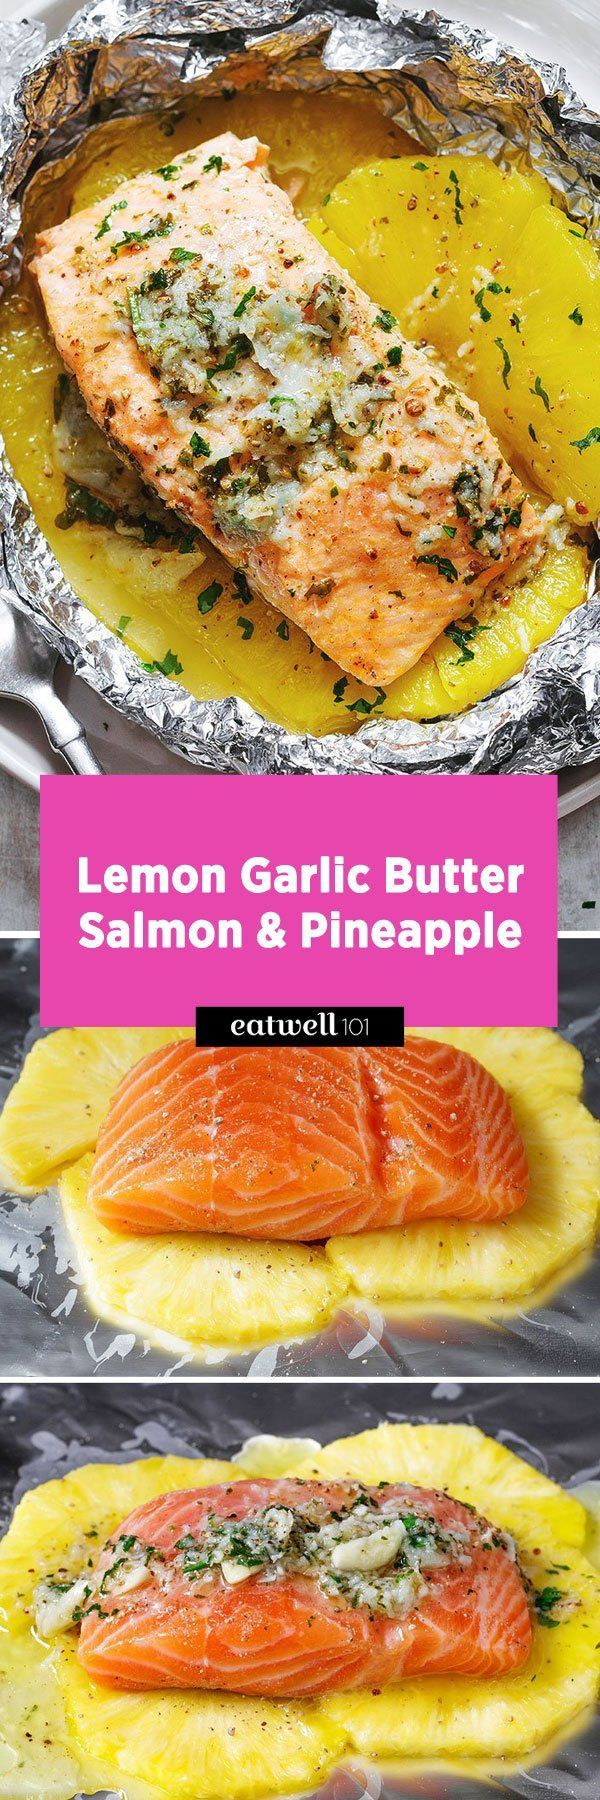 Salmon in Foil Packets – Easy to make, tastes delicious & ready in 20mins!